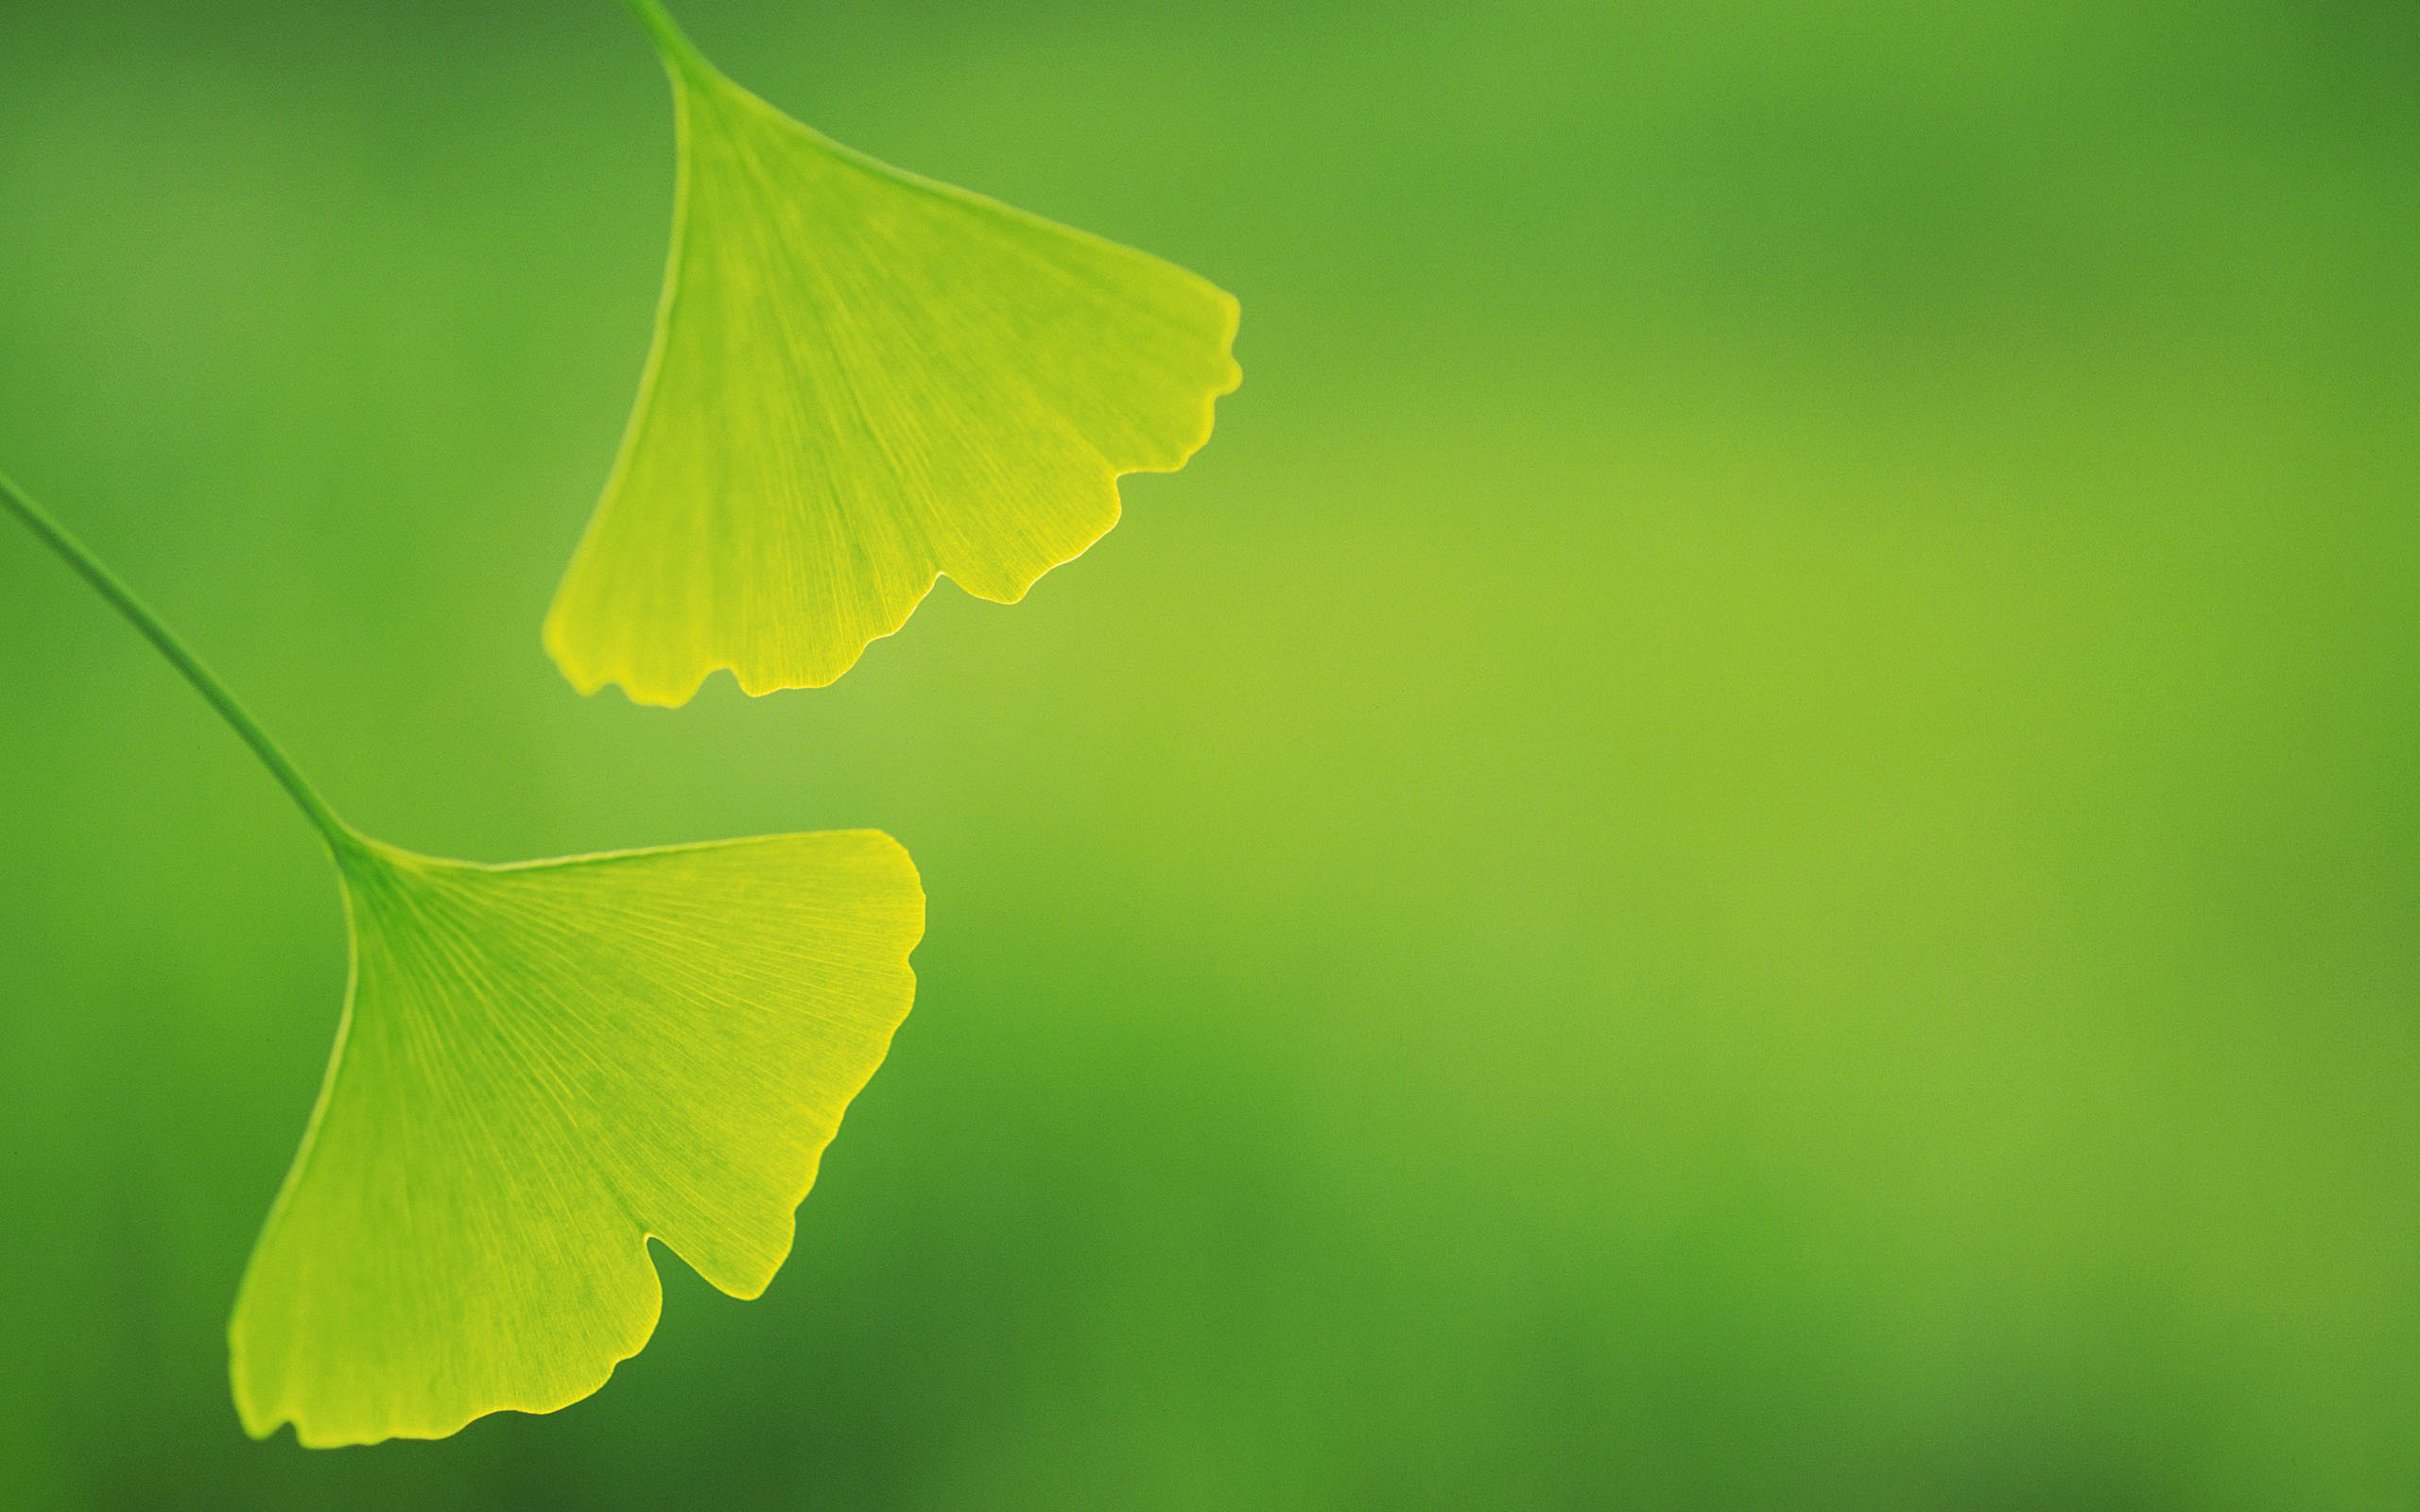 the wallpaper includes two green leaves and background both good